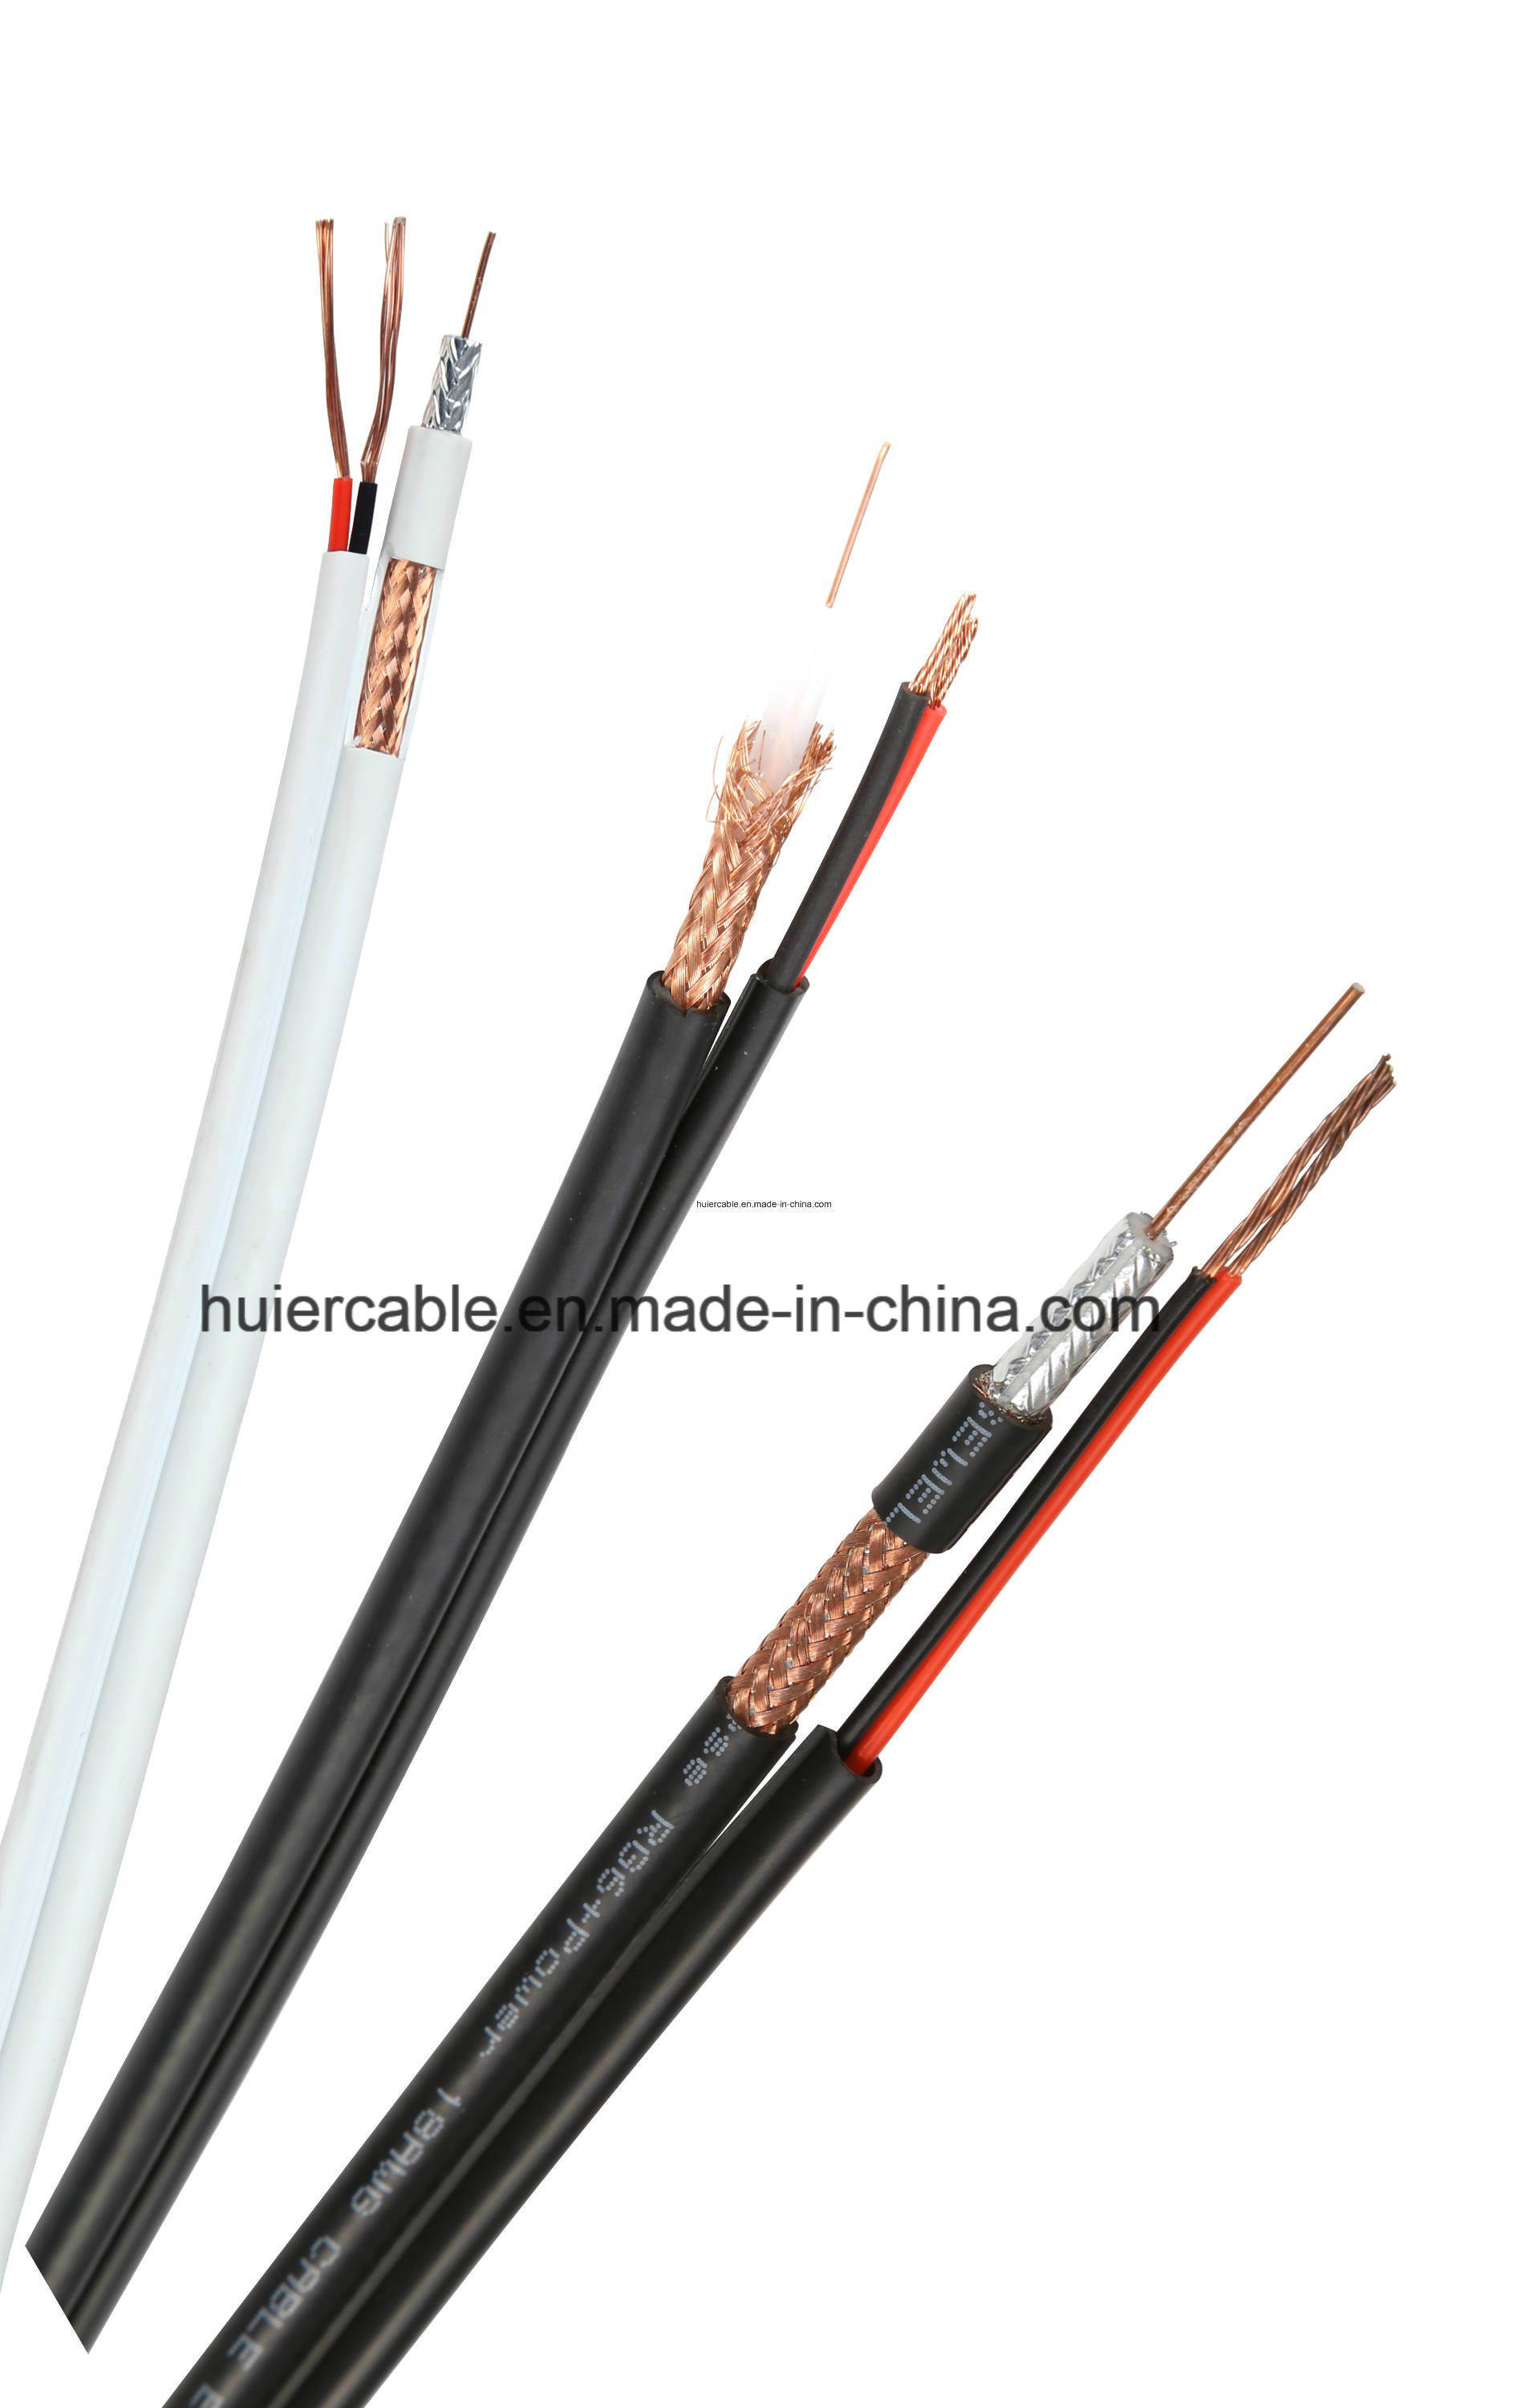 Camera RG6 RG59 CCTV Cable with Power Wires